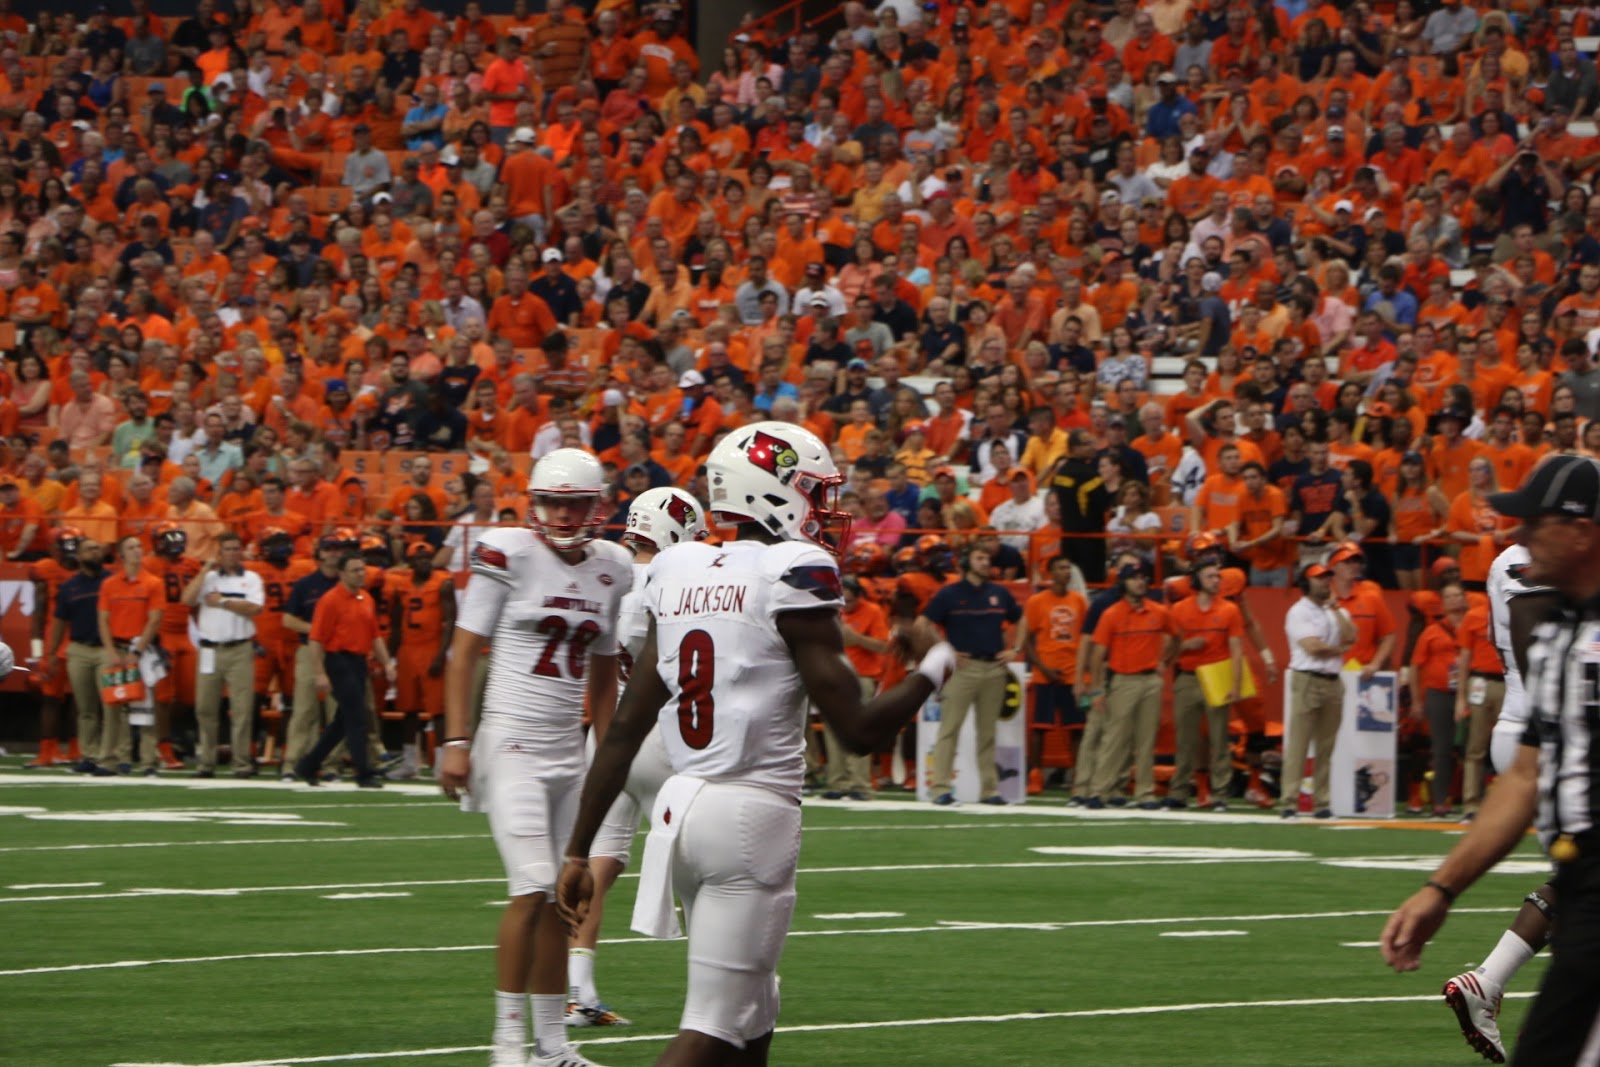 Louisville's Rout of Syracuse in ACC Opener